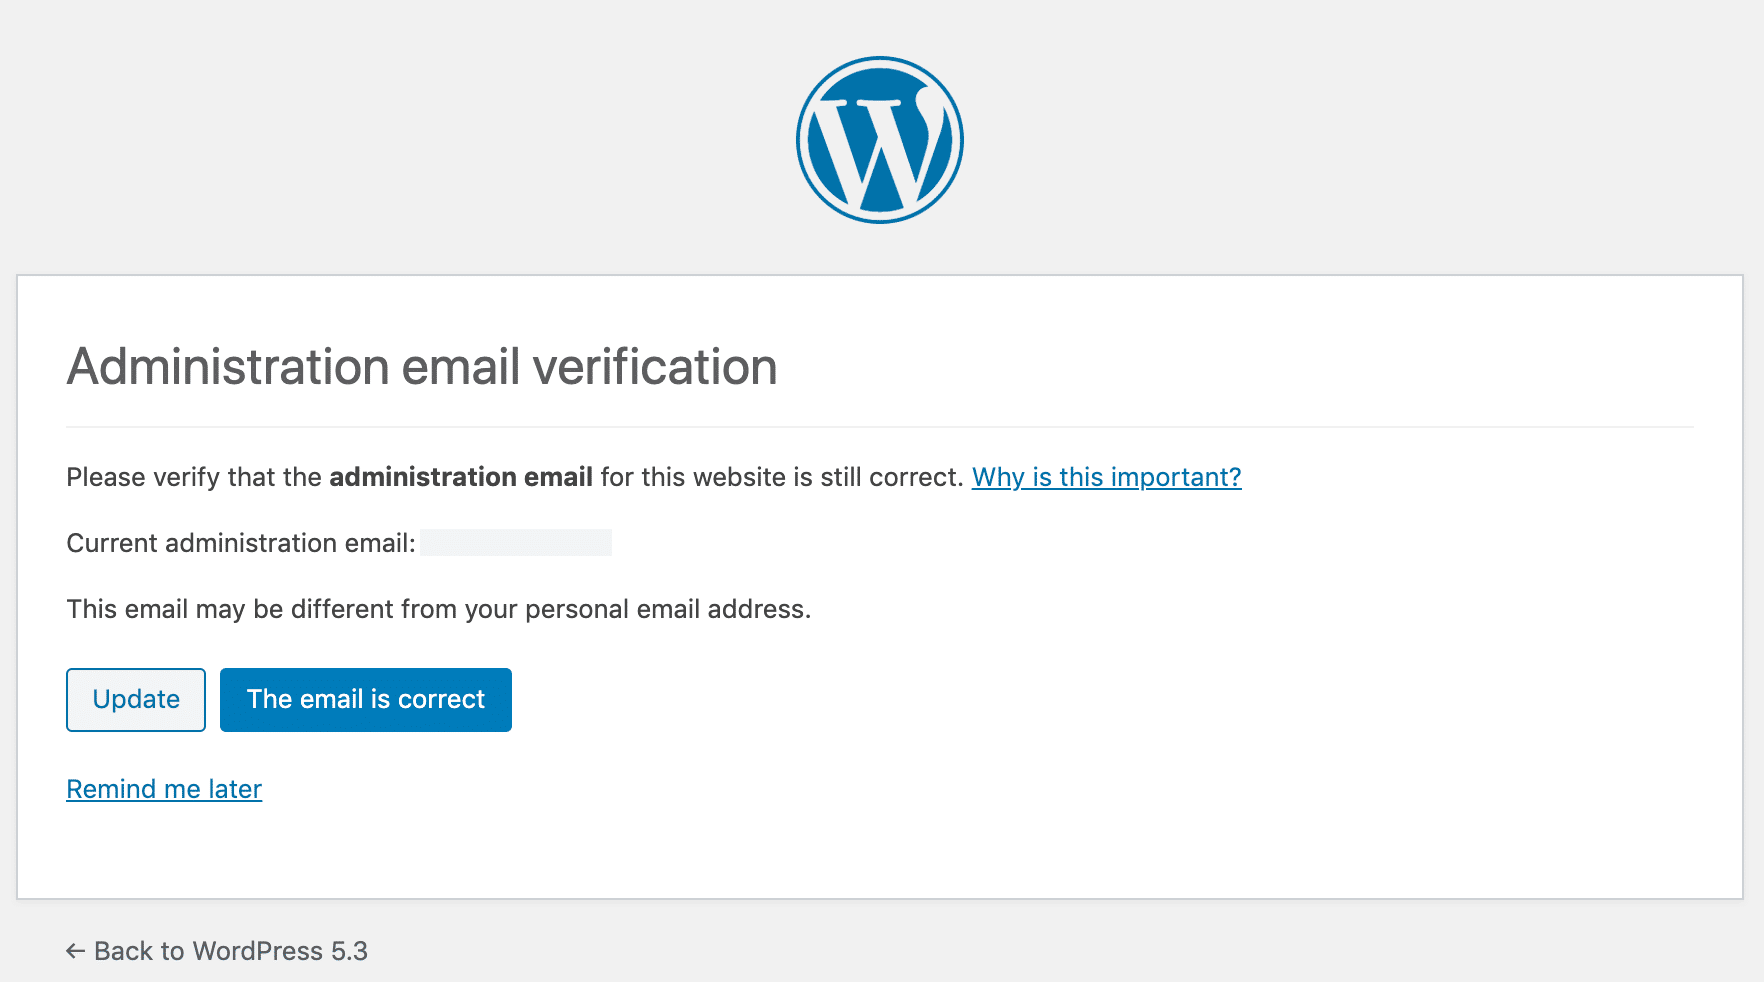 Admin email verification